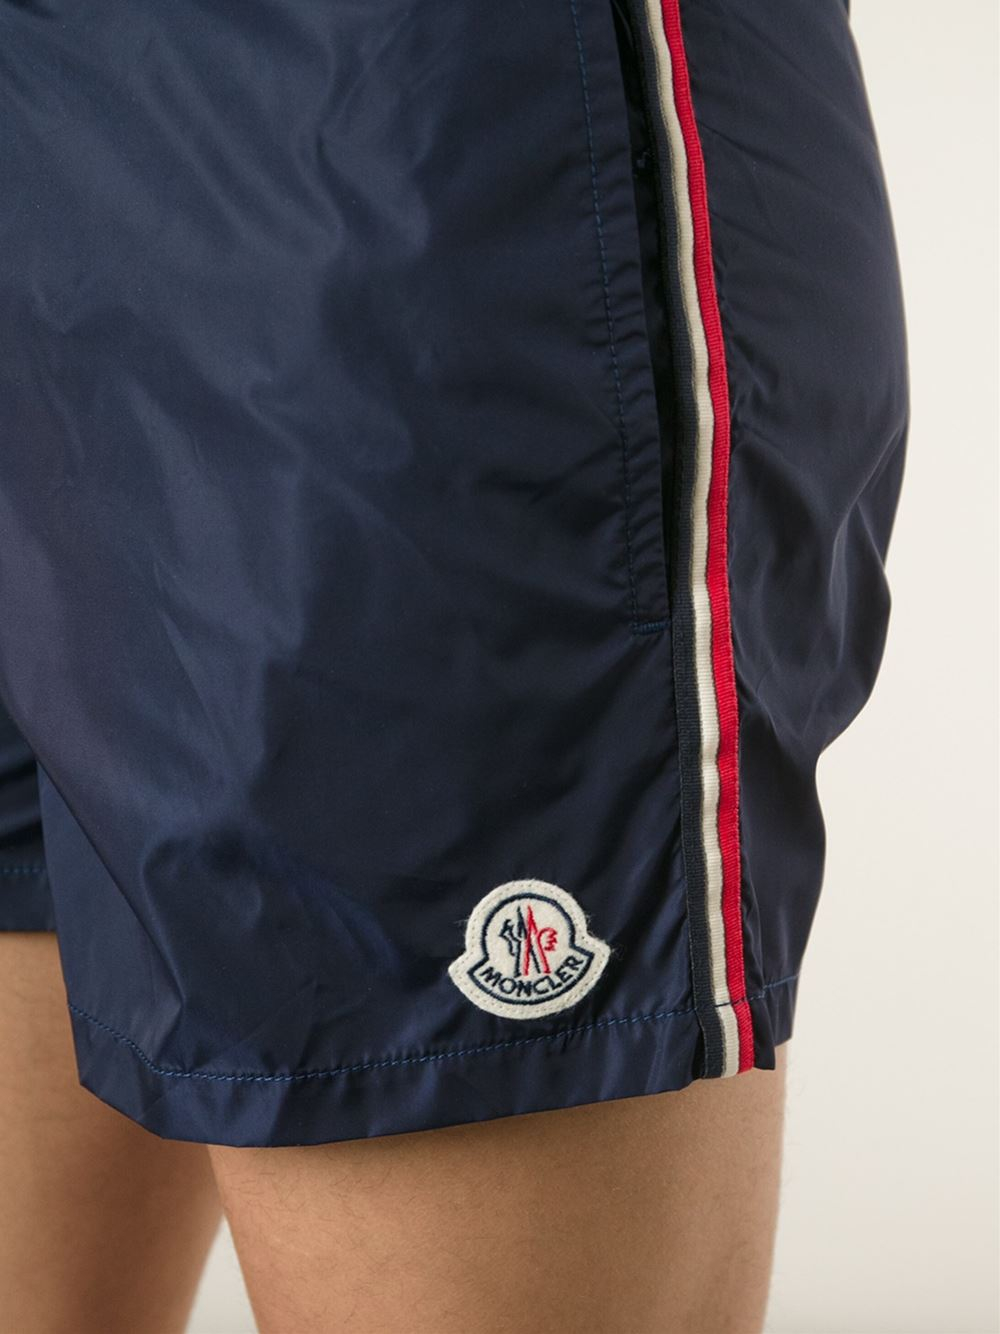 farfetch moncler swim shorts